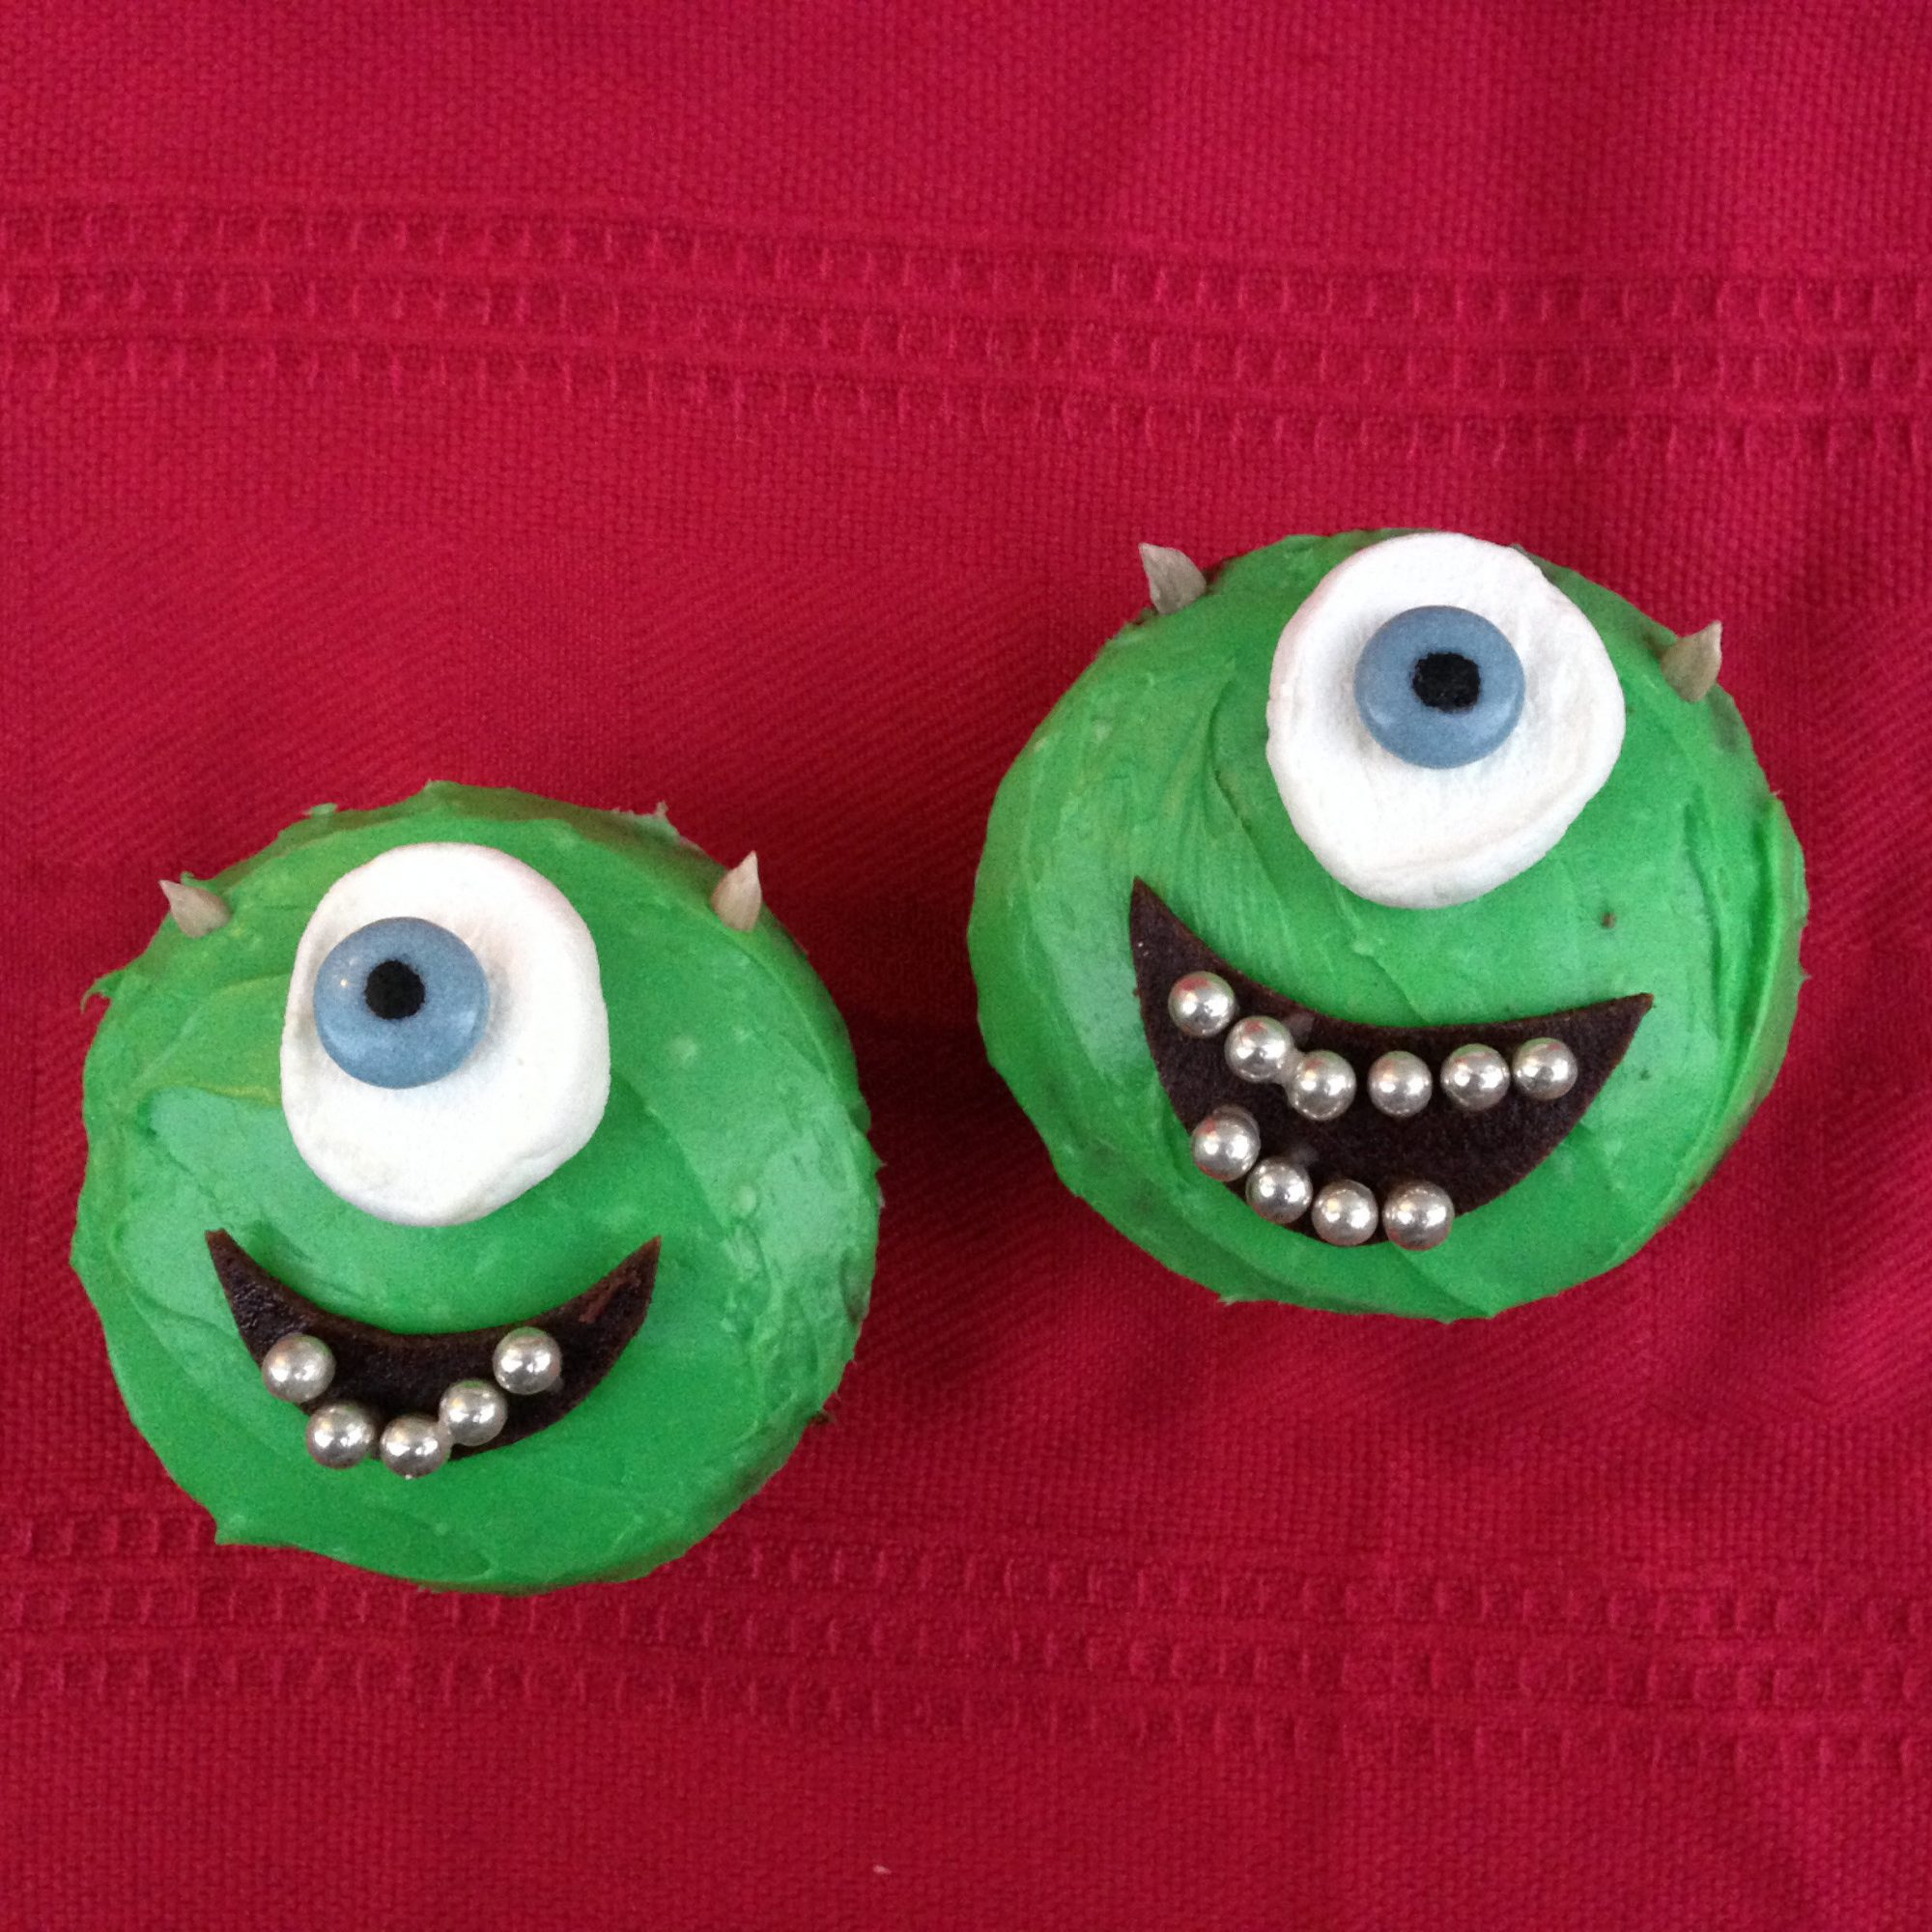 two green frosted cupcakes with cyclops eyes